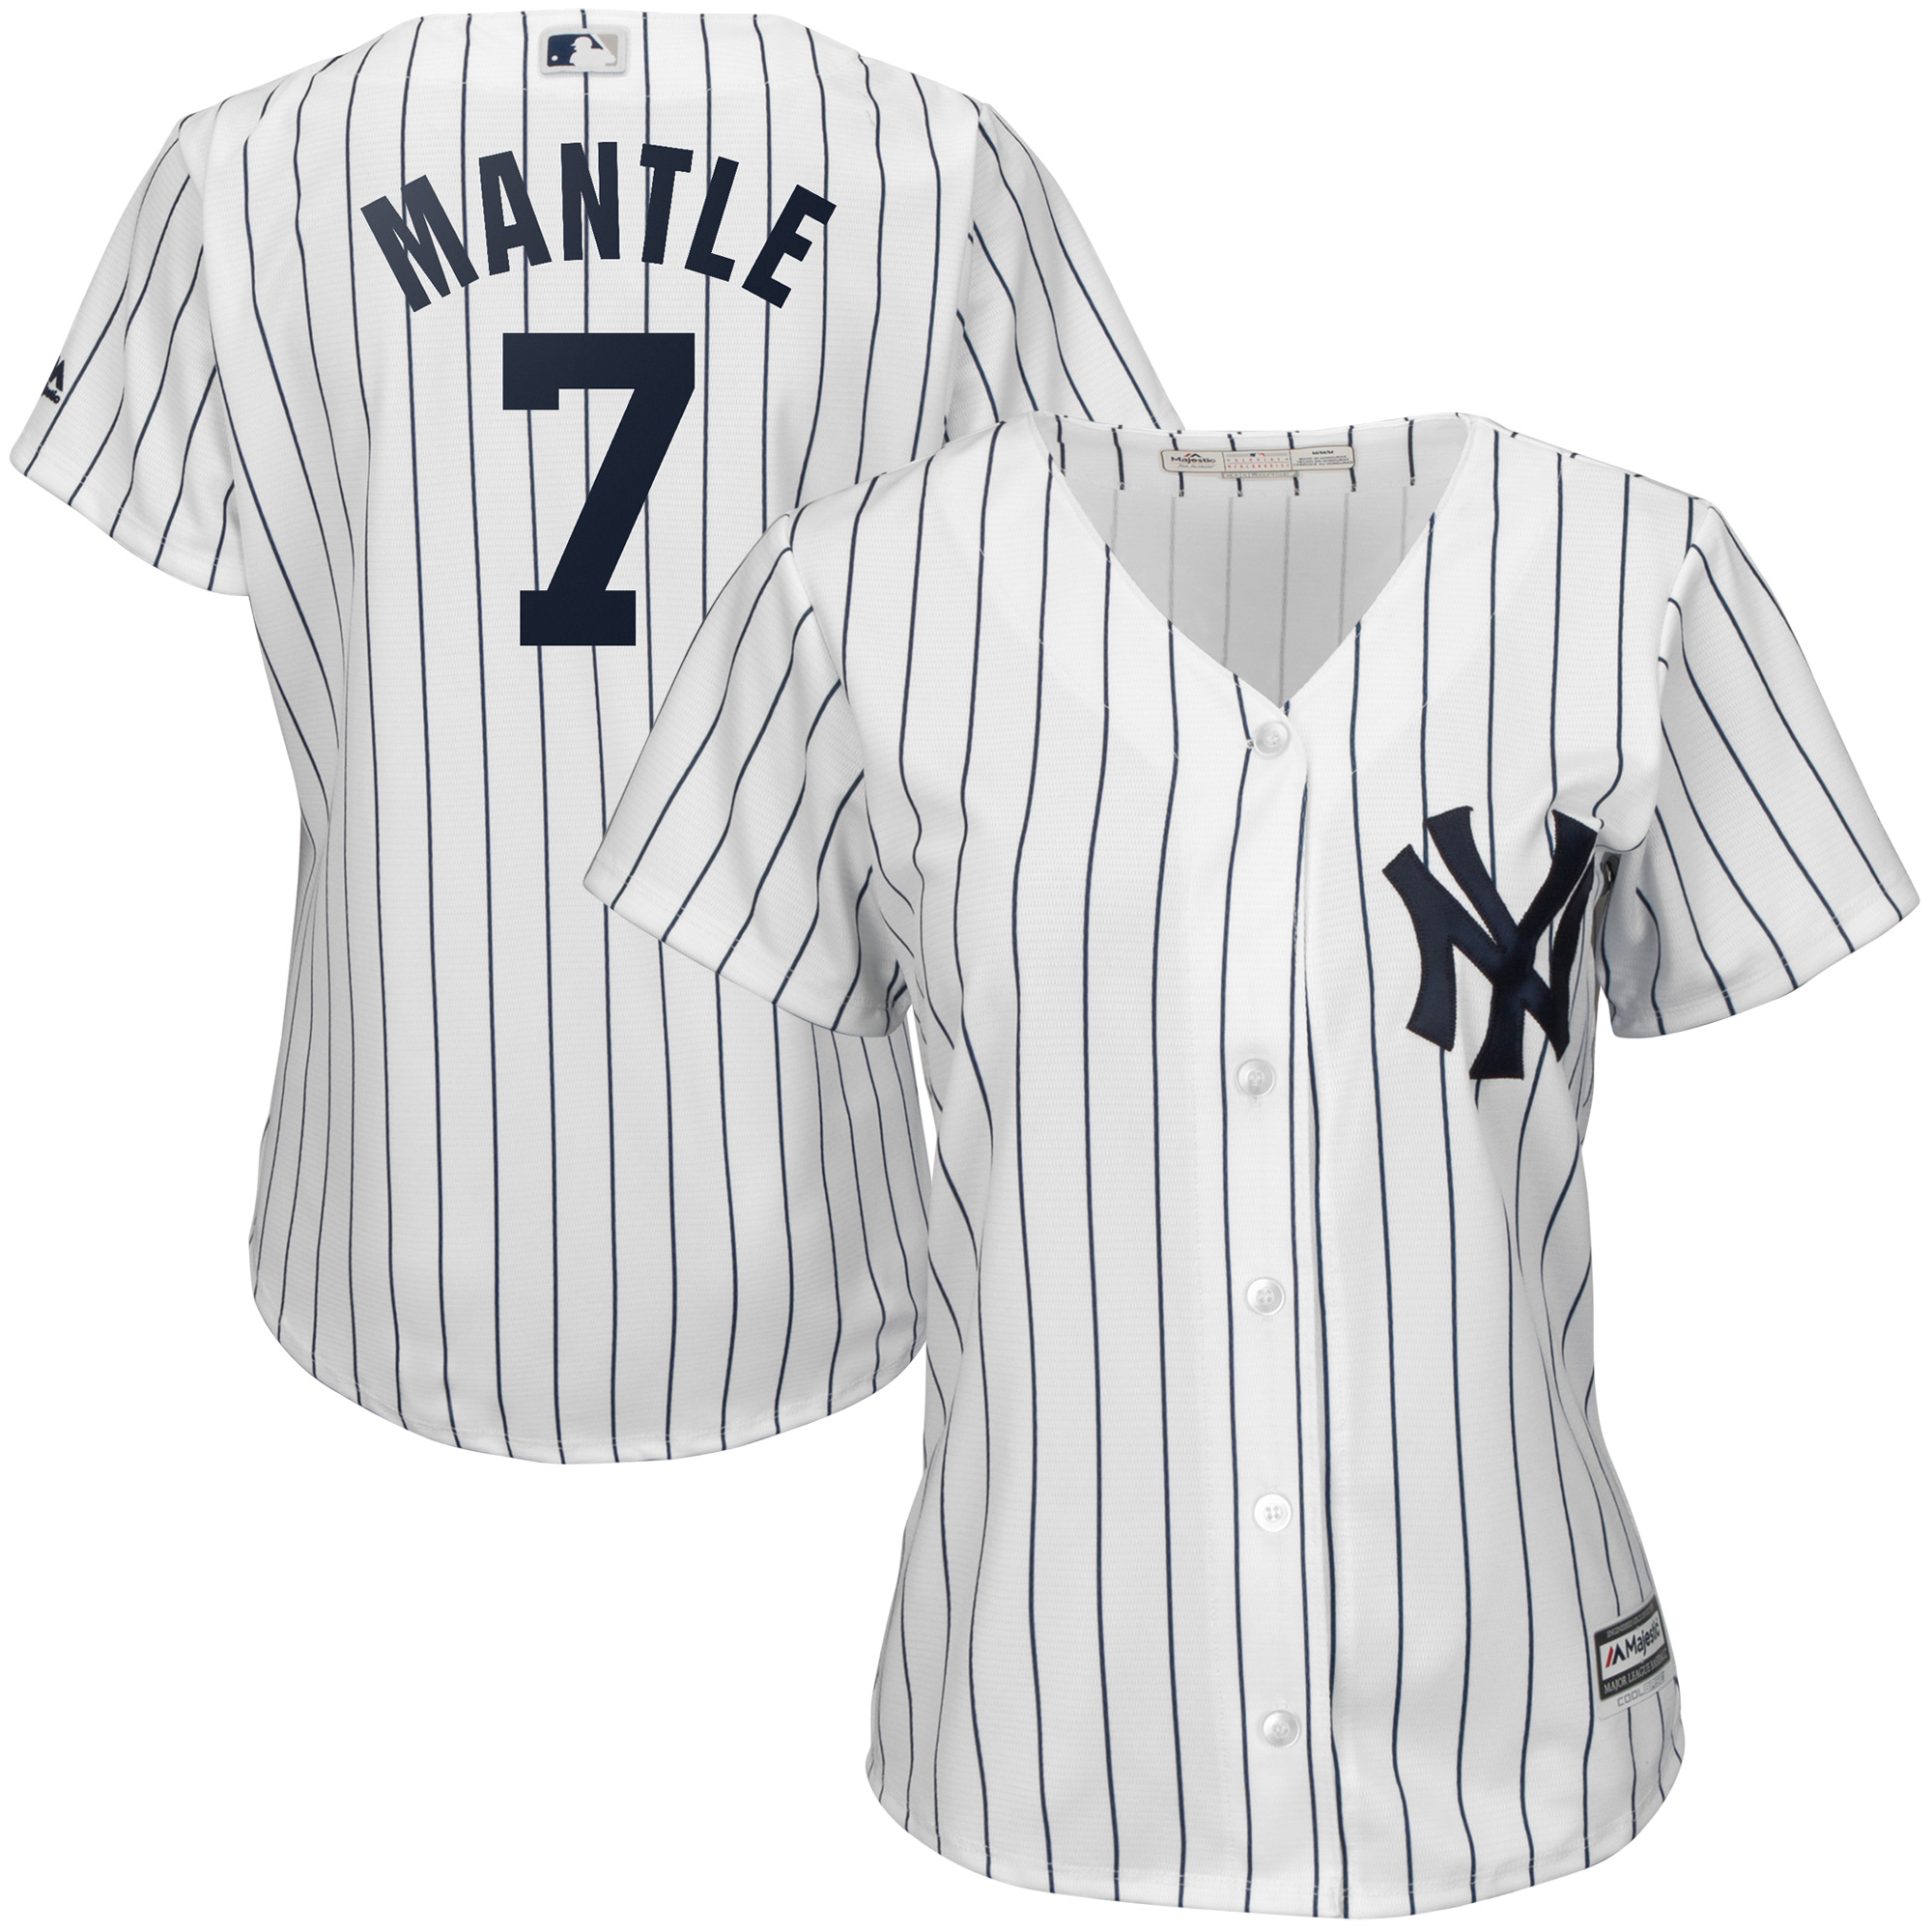 Mickey Mantle New York Yankees Majestic Women's Cool Base Player Jersey White by MAJESTIC LSG